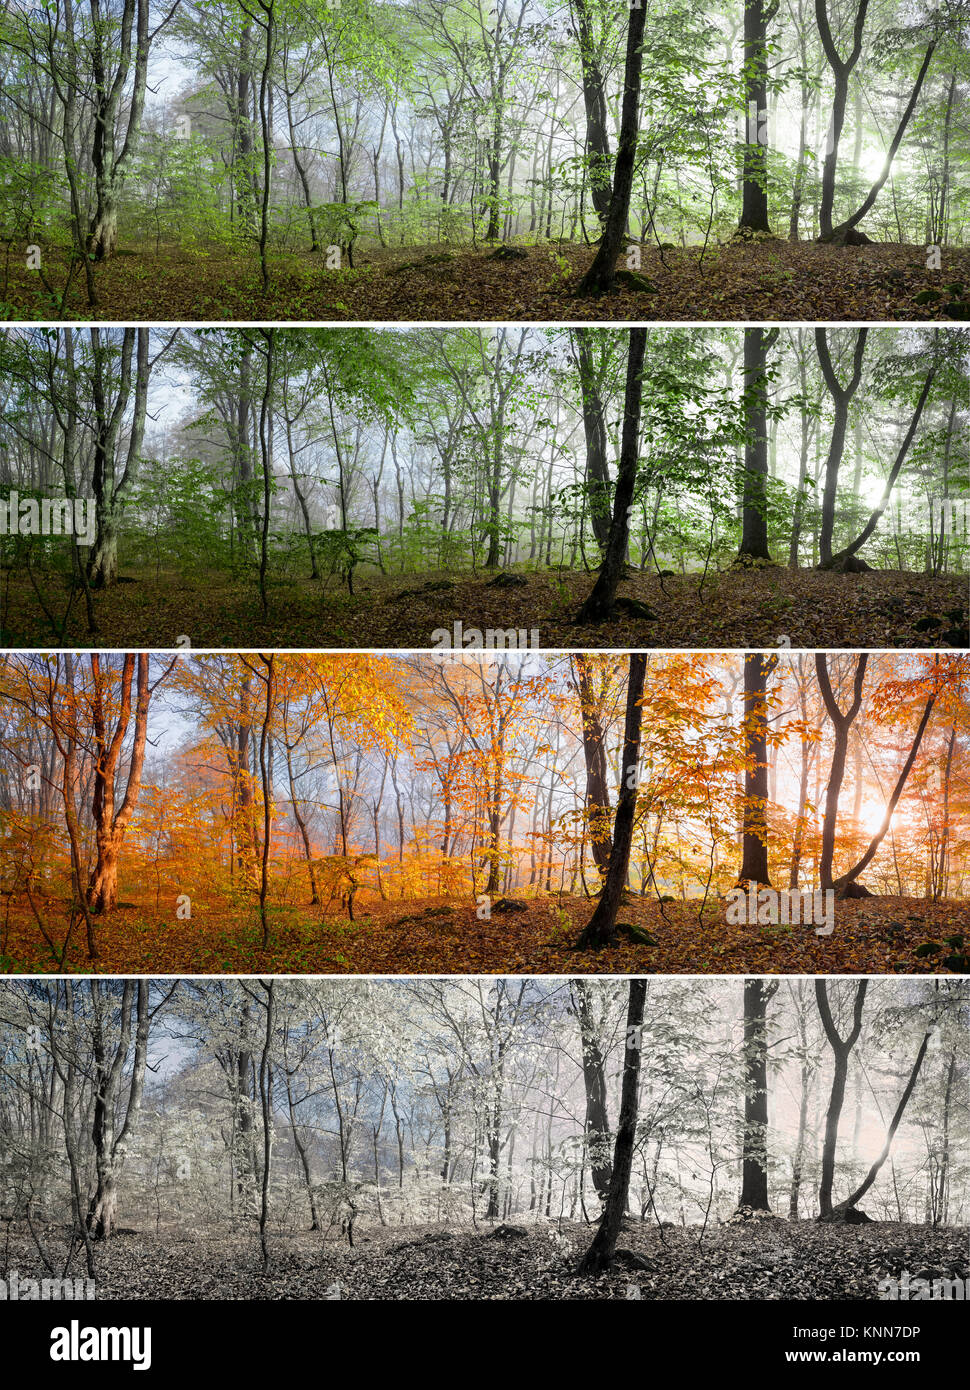 Change of four seasons in the forest panorama, spring, summer, autumn, winter - Stock Image